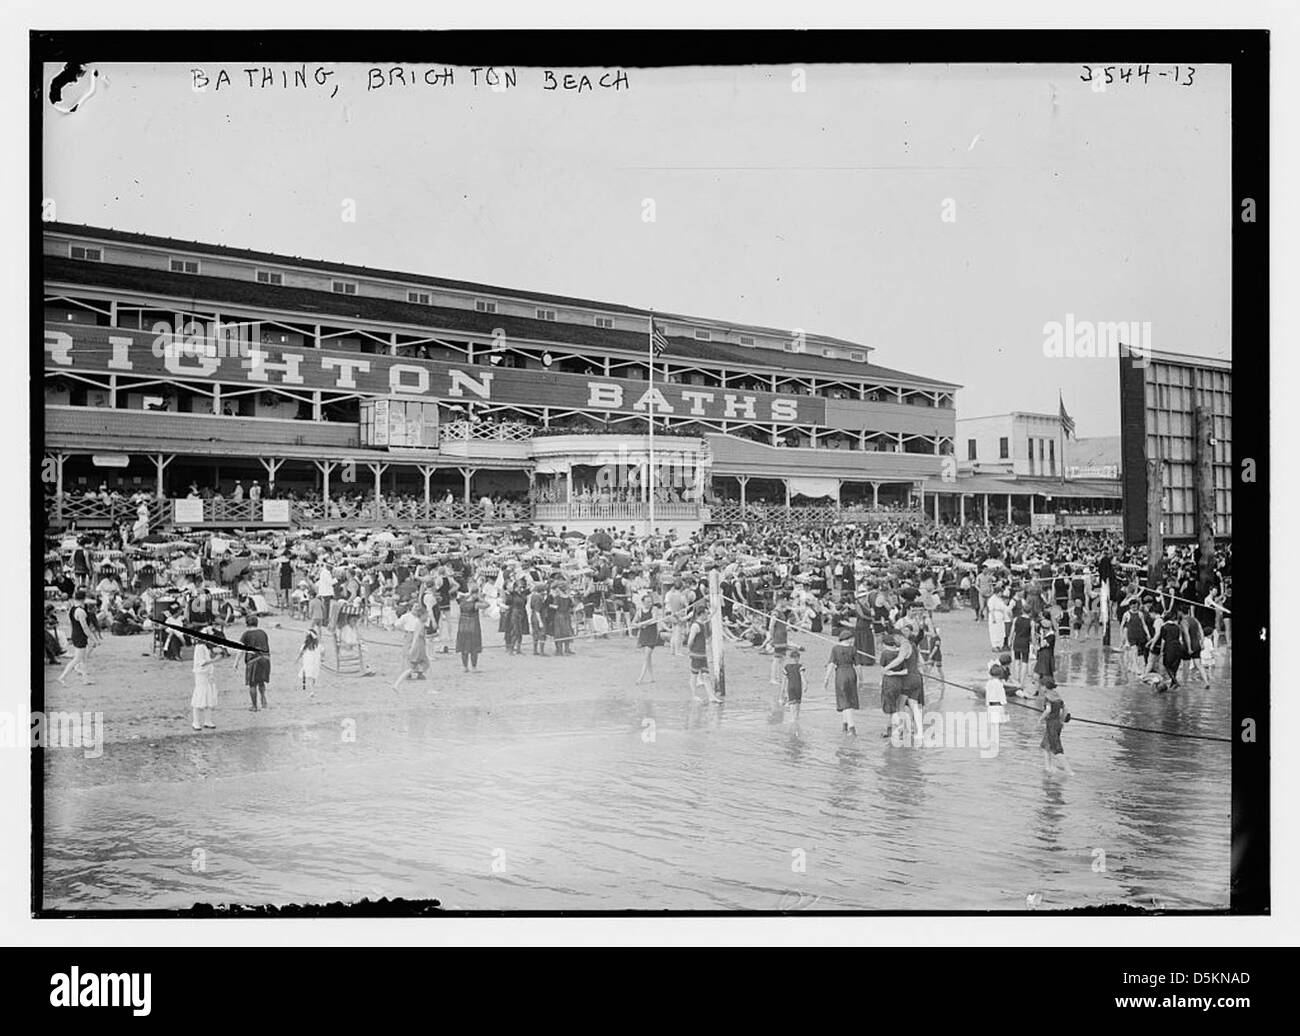 Bathing beach black and white stock photos images alamy for Hotels near portrush with swimming pool